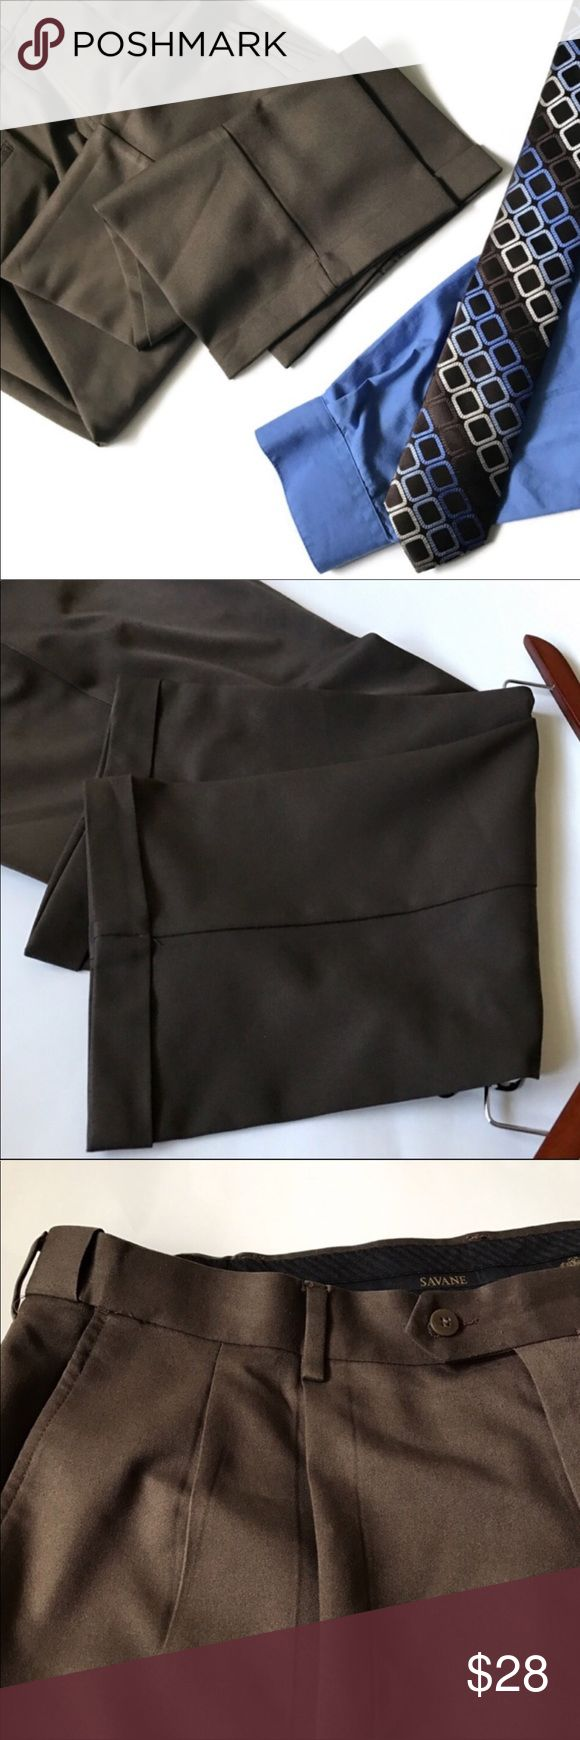 Men's classy dress pants Comfort plus dress pants by Savane in like new condition. Keeps you cool and dry. Perfect for a dress casual or dress up occasion!  Fabric: 100% polyester  Color: chocolate  Size: 40x32 Savane Pants Dress